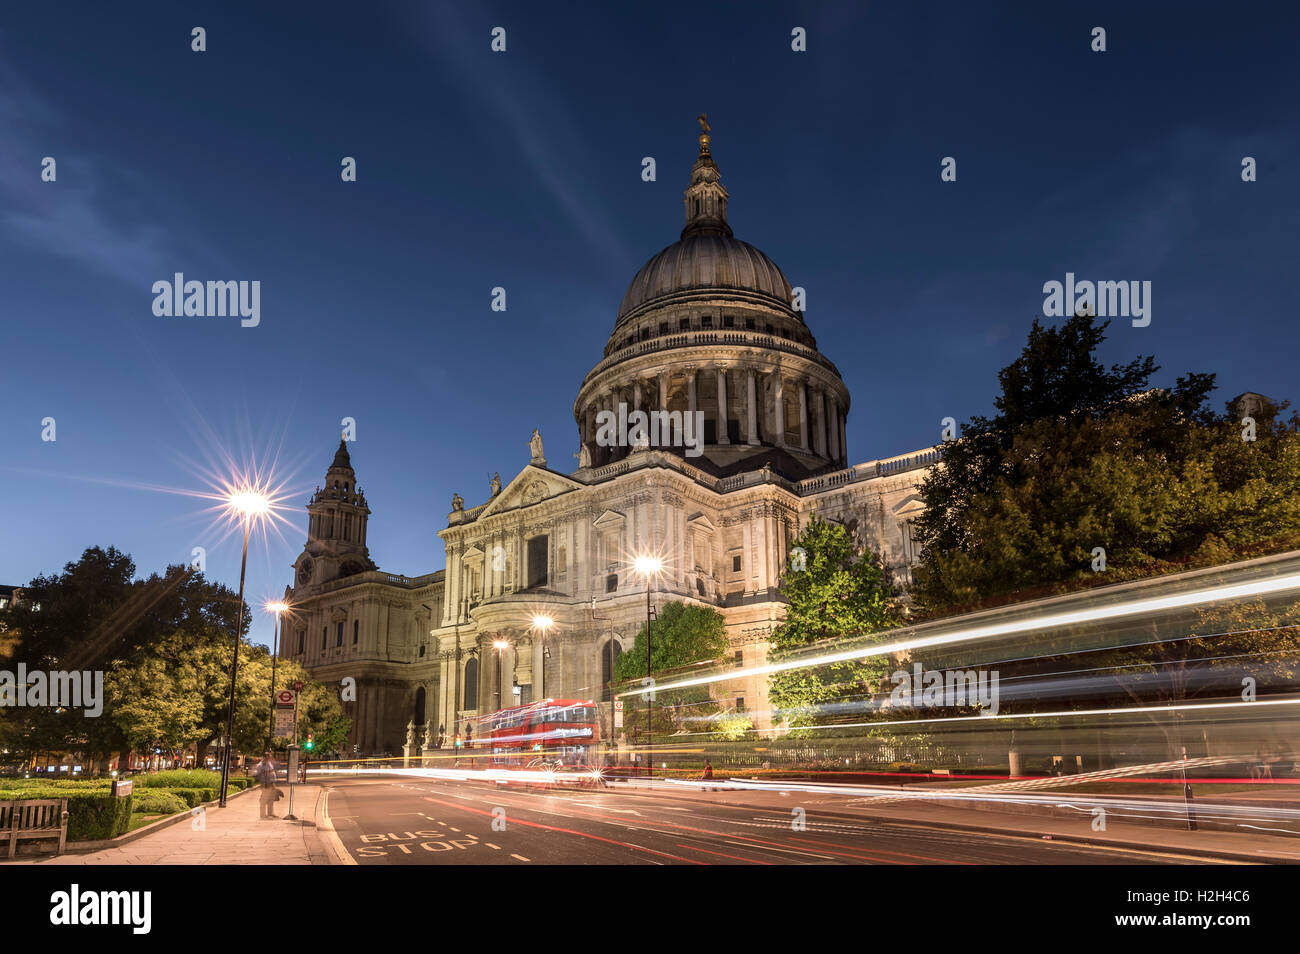 St Paul's Cathedral, at night, with traffic trails of London buses on the street in the forefront of the picture - Stock Image